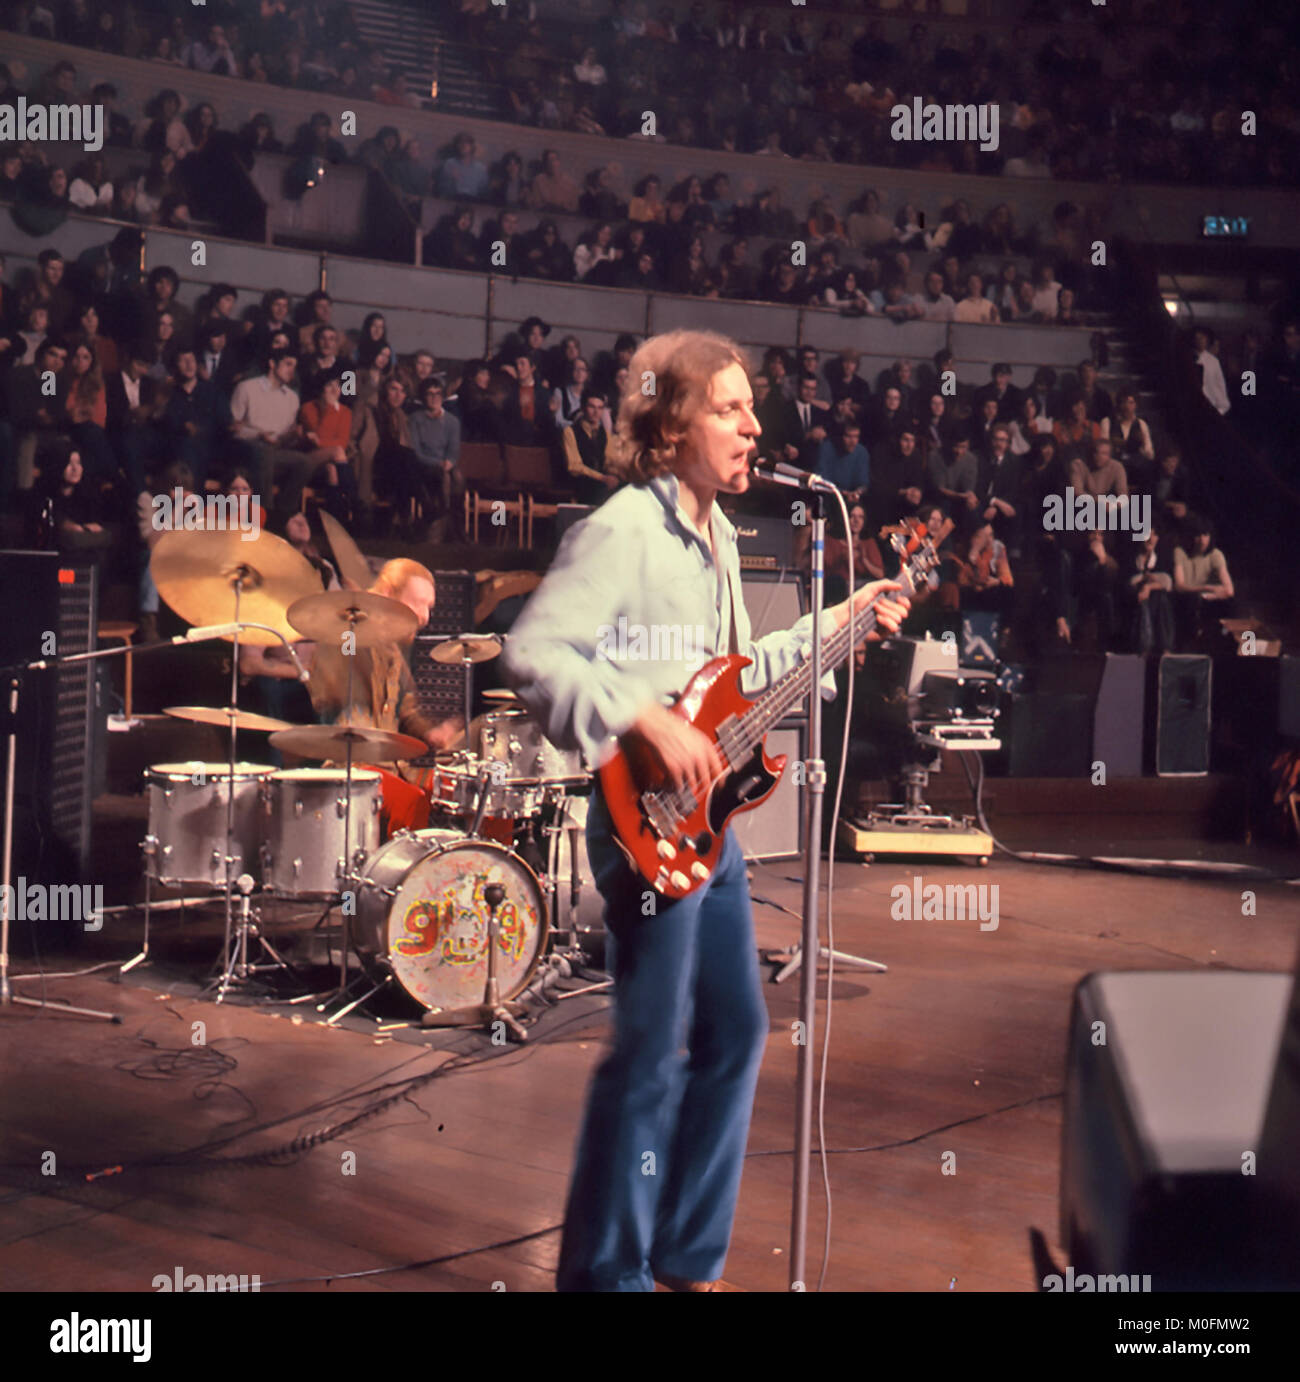 CREAM UK rock group farwell concert at the London Albert Hall 26 November 1968. with Jack Bruce on guitar. Photo: - Stock Image